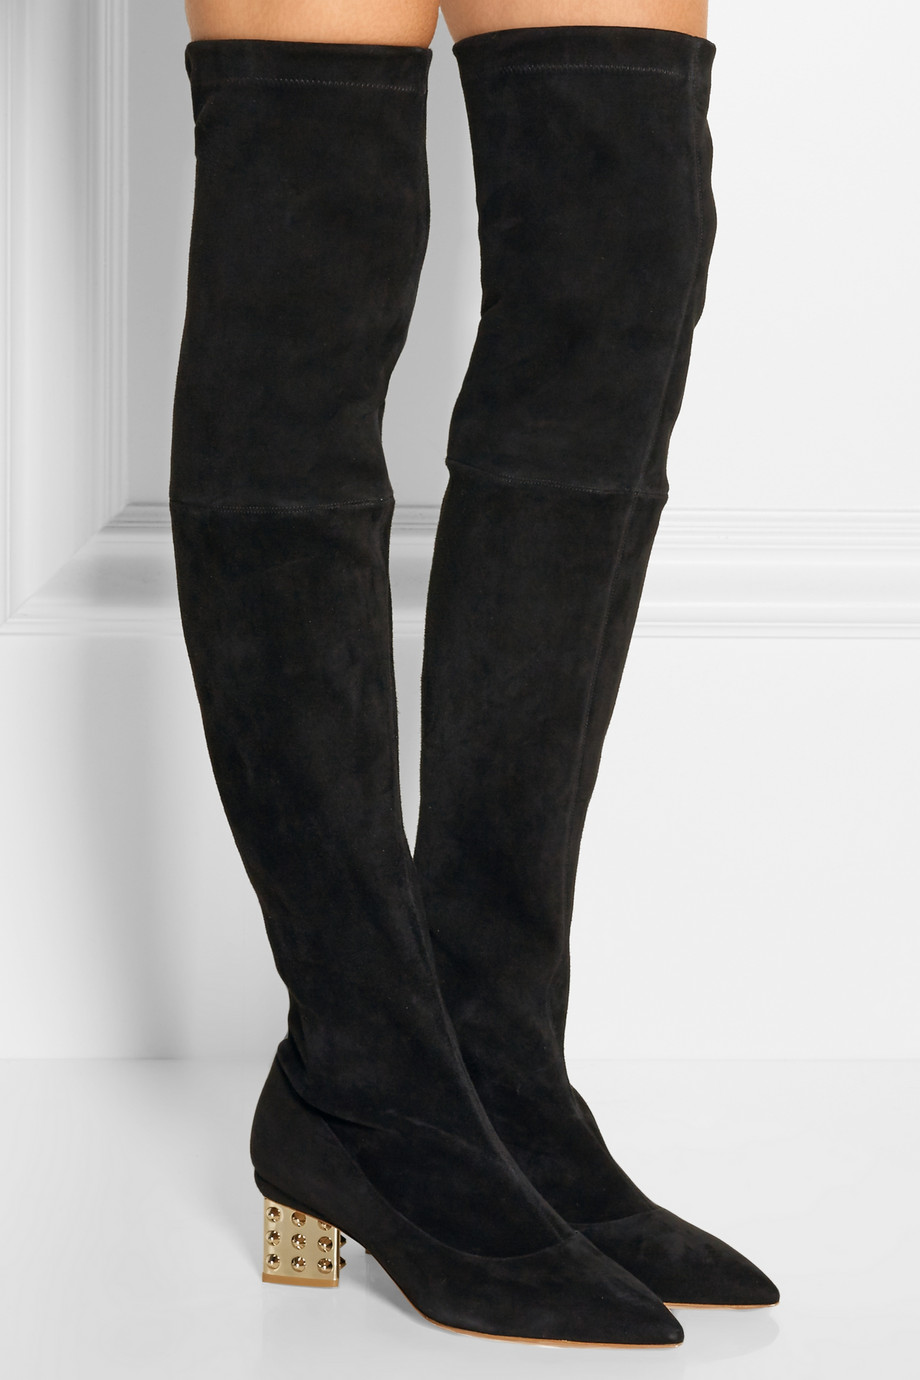 Nicholas Kirkwood's over-the-knee boots